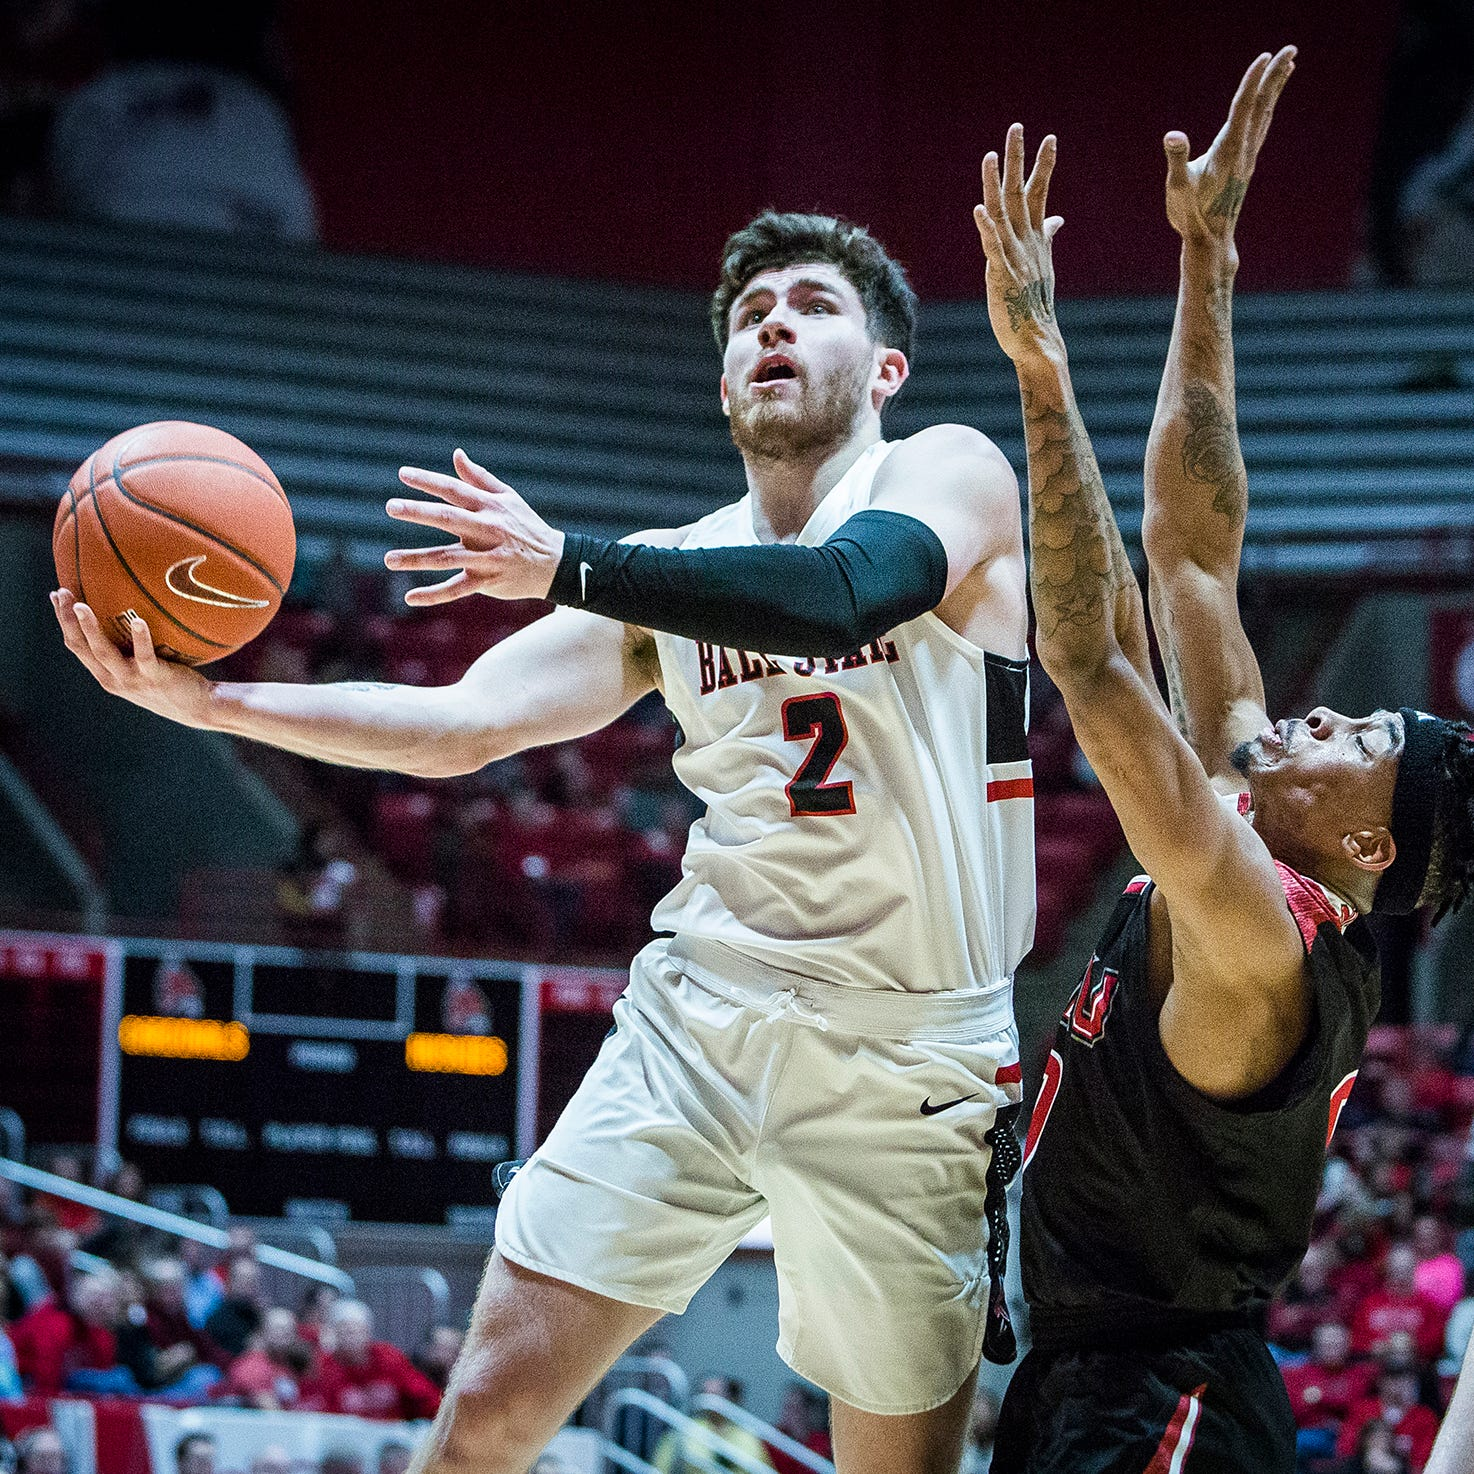 The end of an era for Ball State basketball in final home games for Tayler Persons, Trey Moses